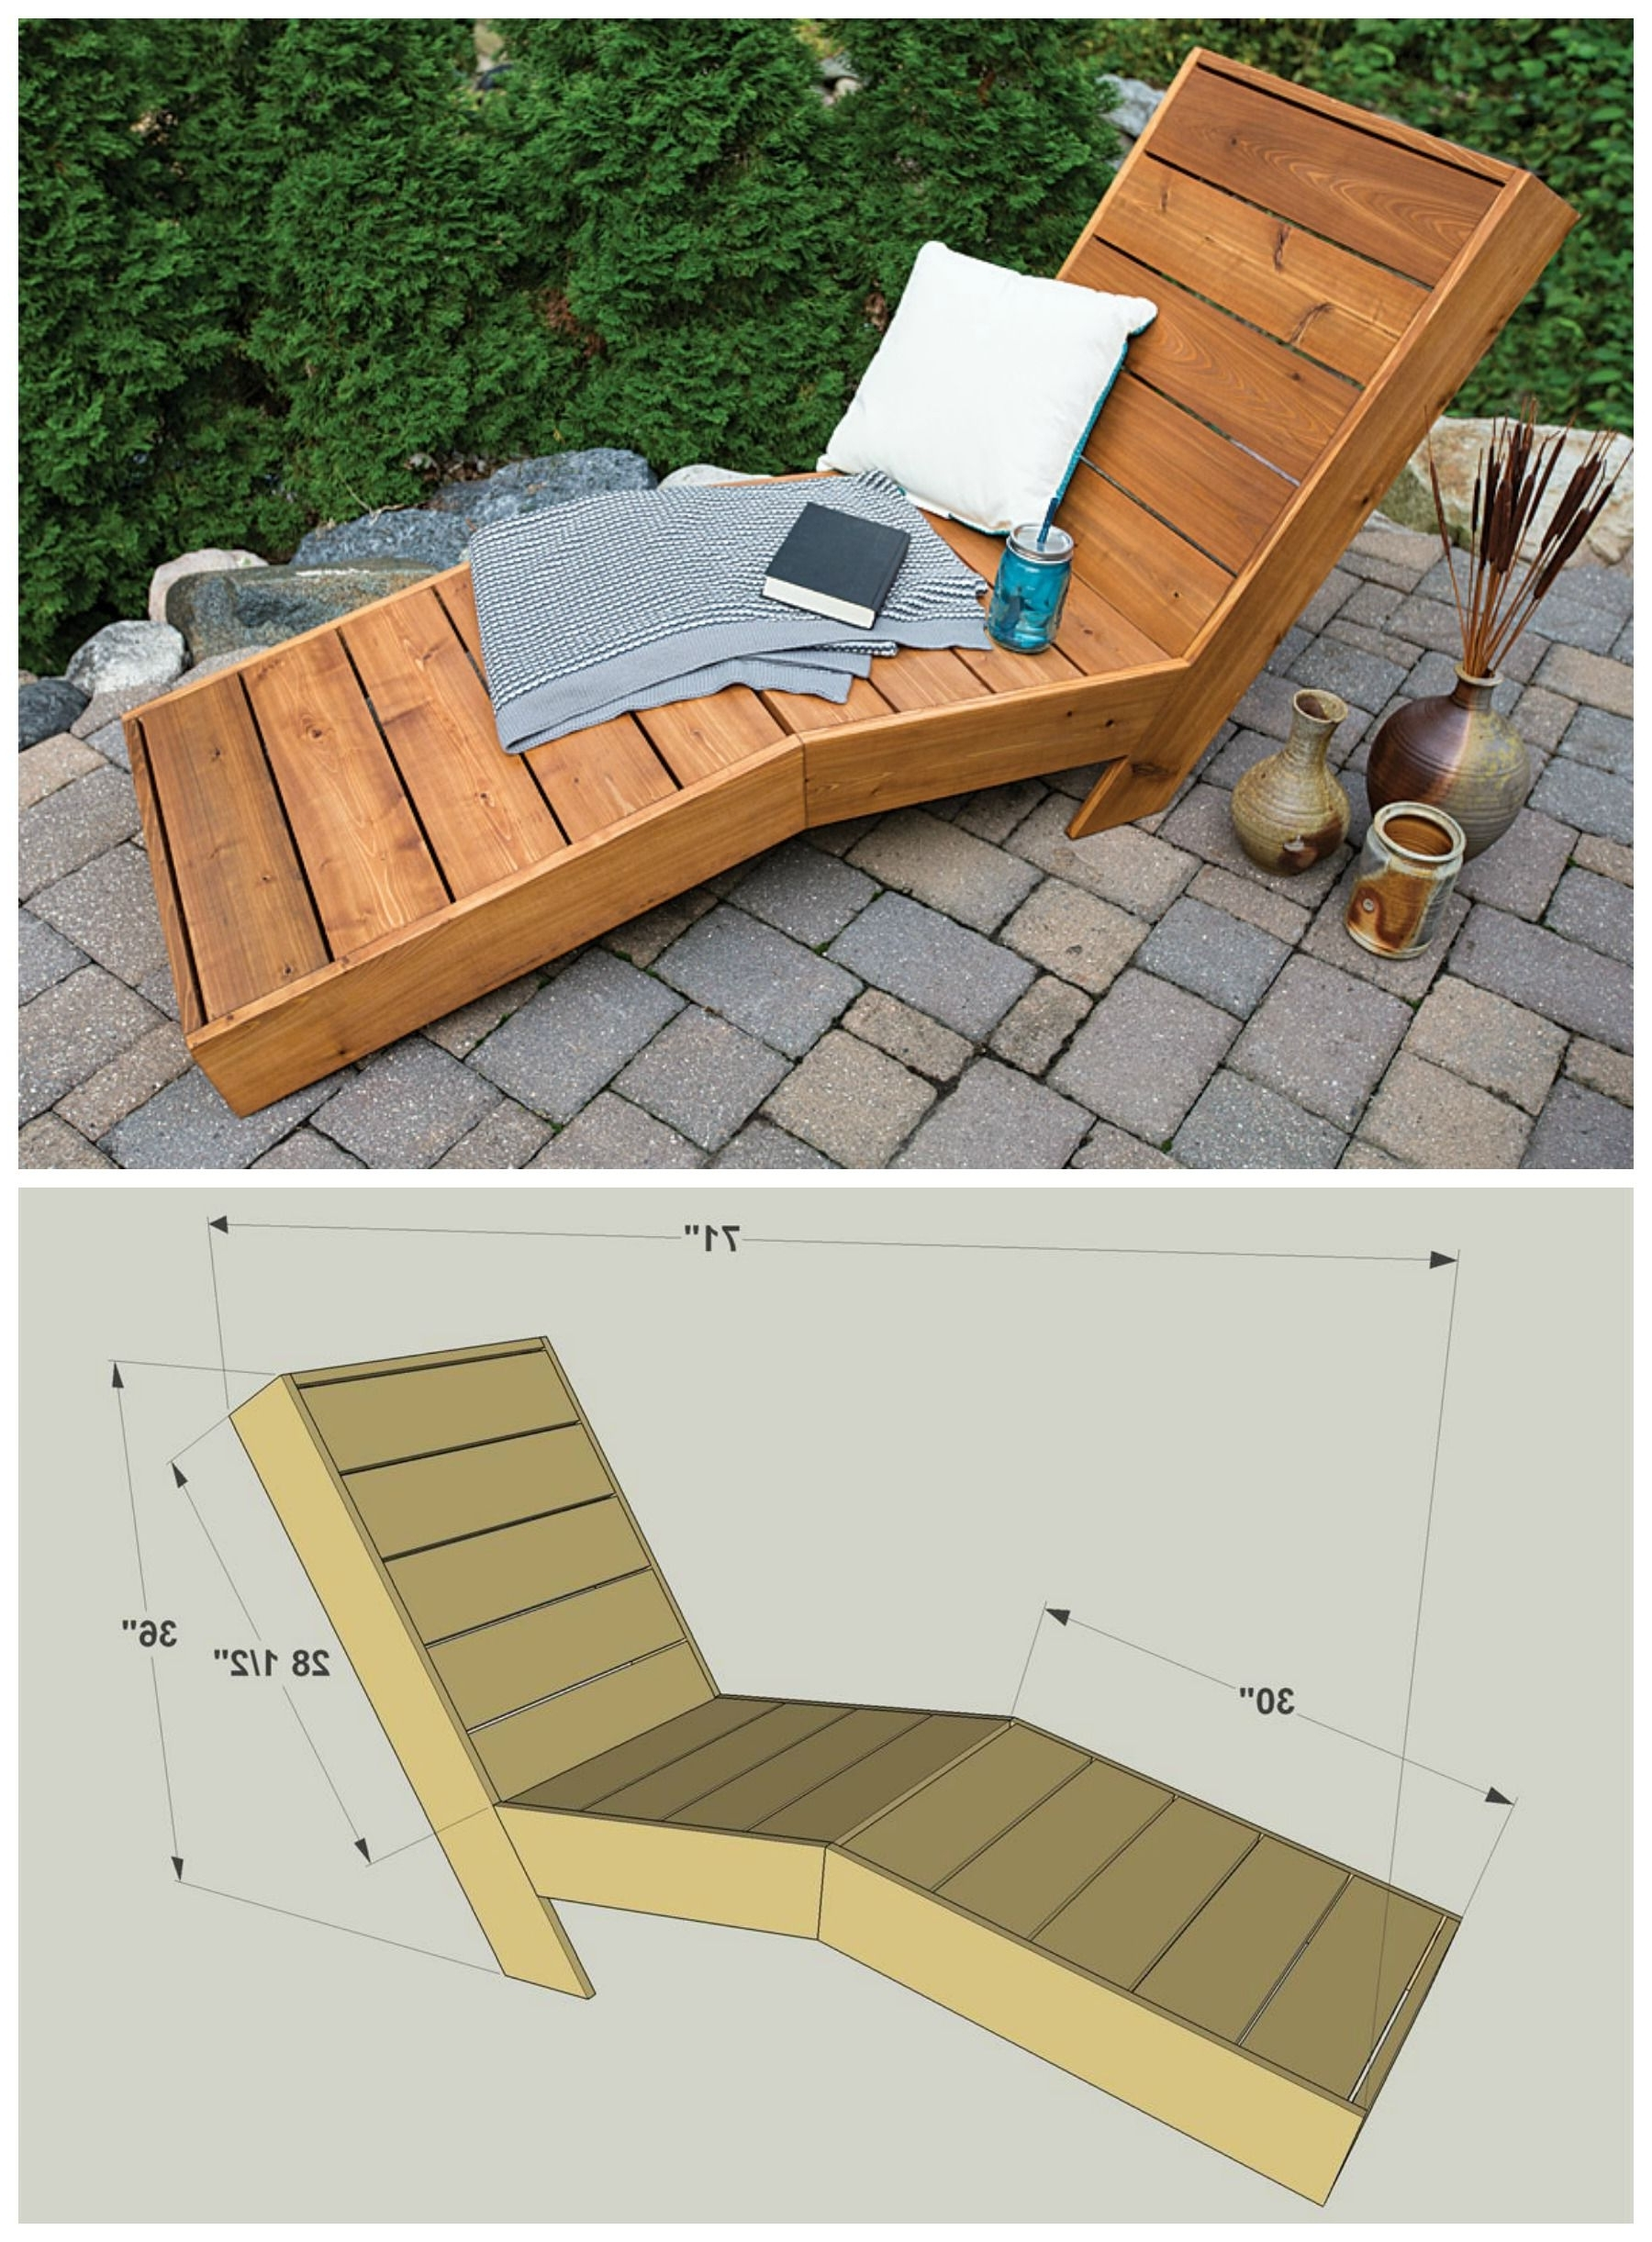 Diy Outdoor Chaise Lounge :: Free Plans At Buildsomething With Current Diy Outdoor Chaise Lounge Chairs (View 2 of 15)